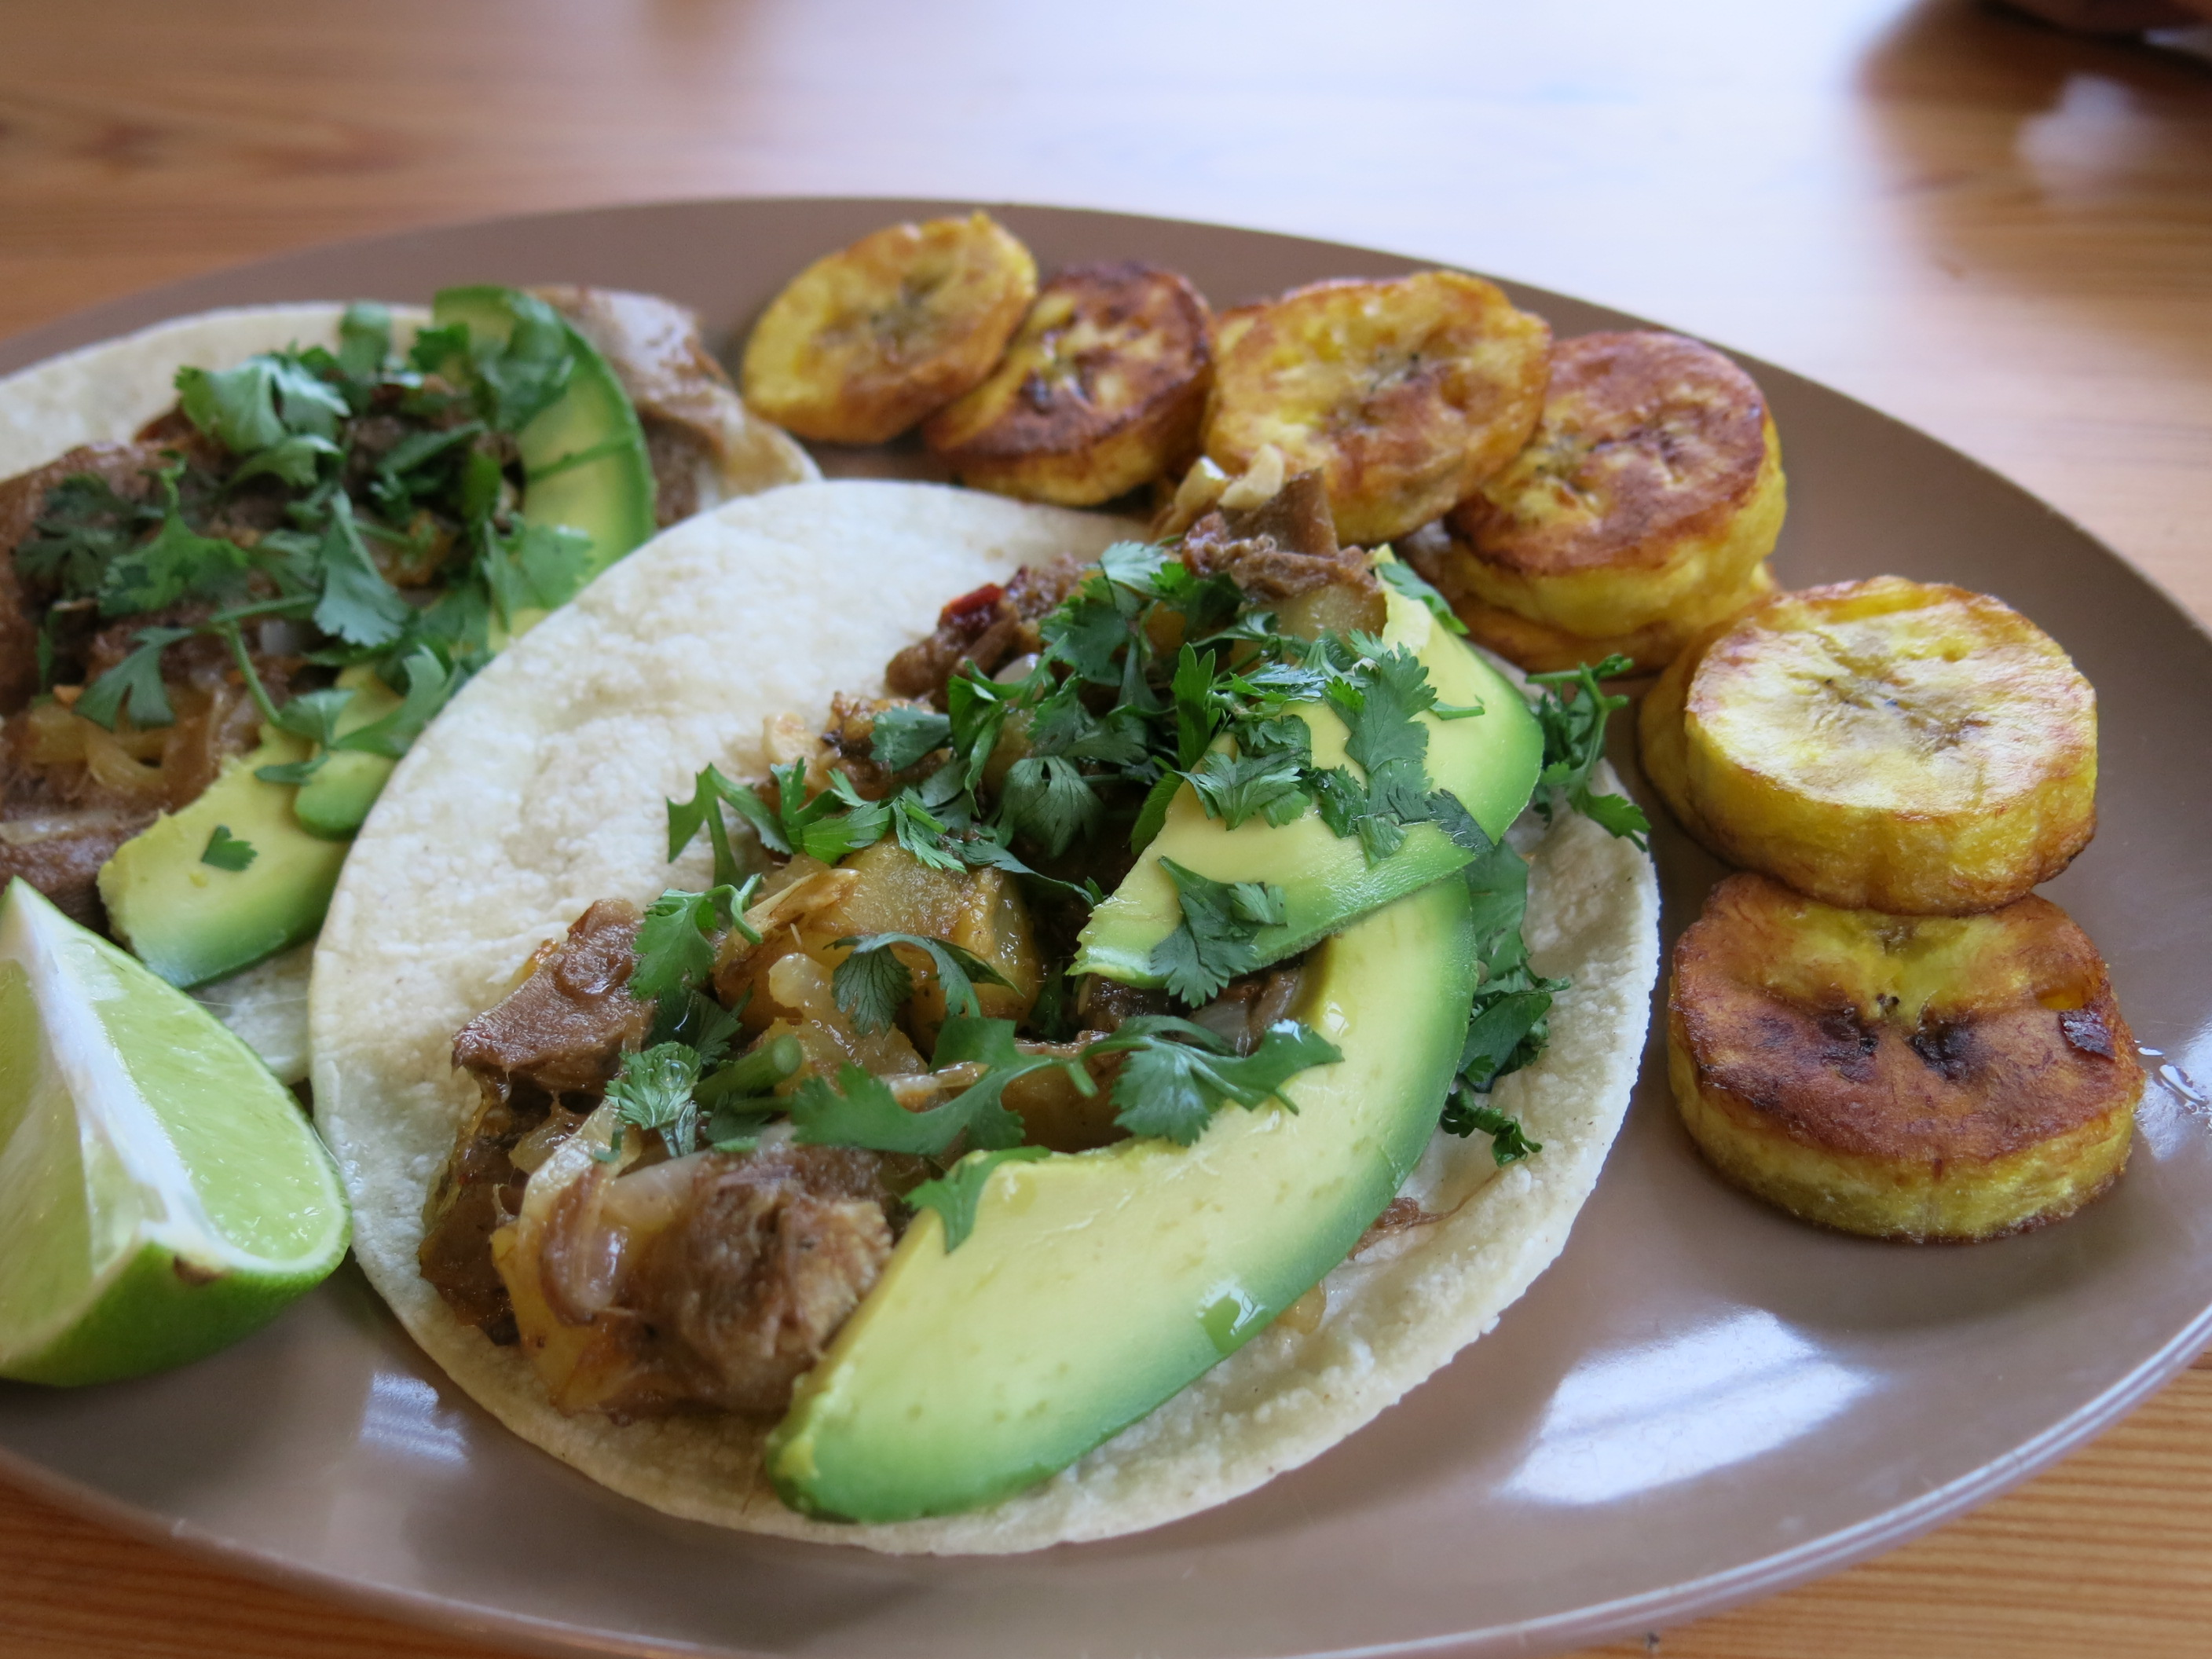 Tacos de Lengua al Pastor (Beef Tongue Tacos with Pineapple)